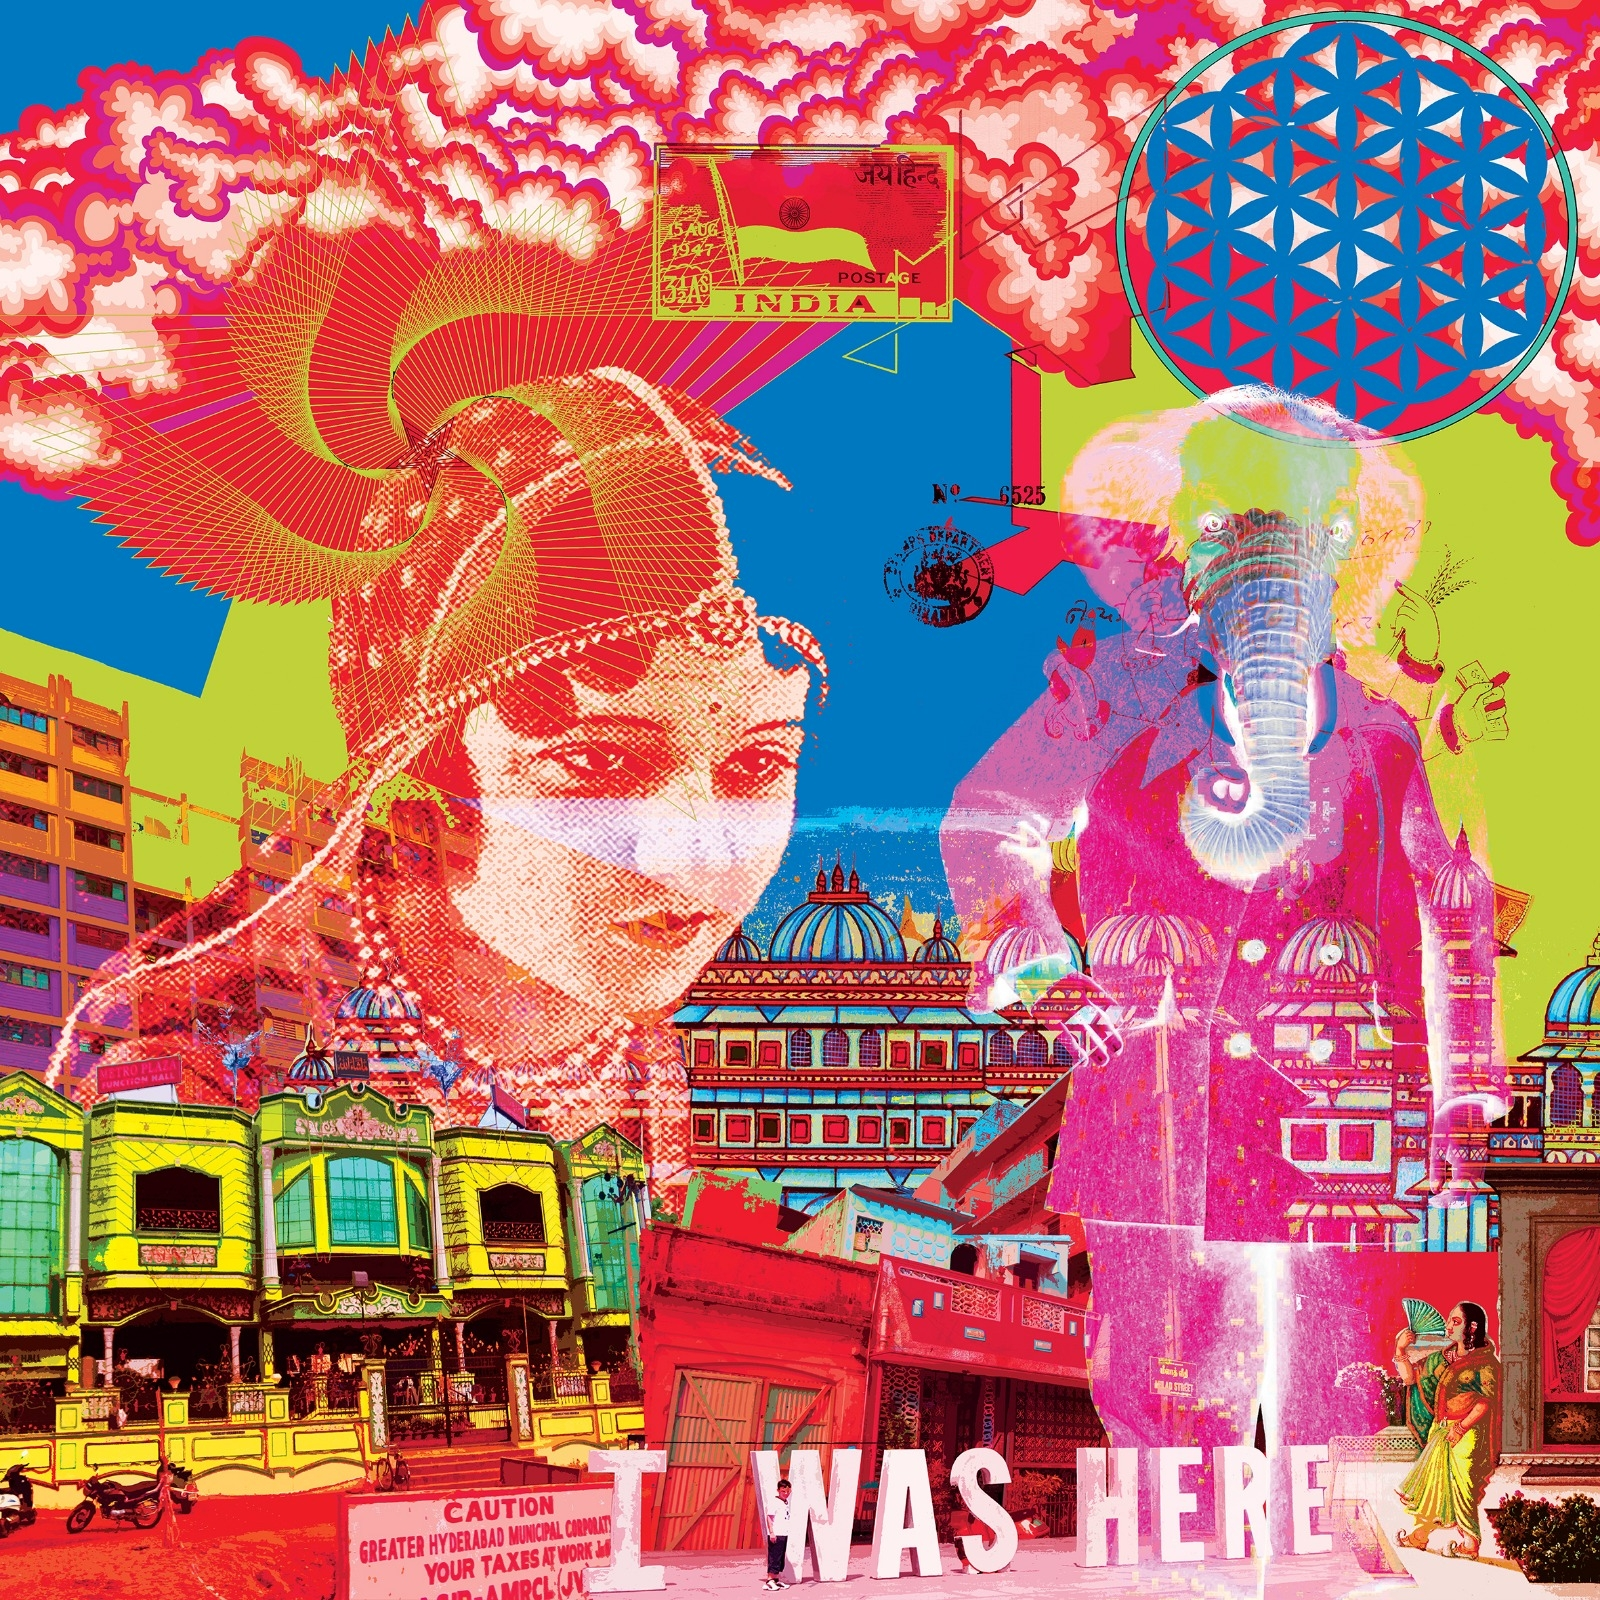 'India - I was here'